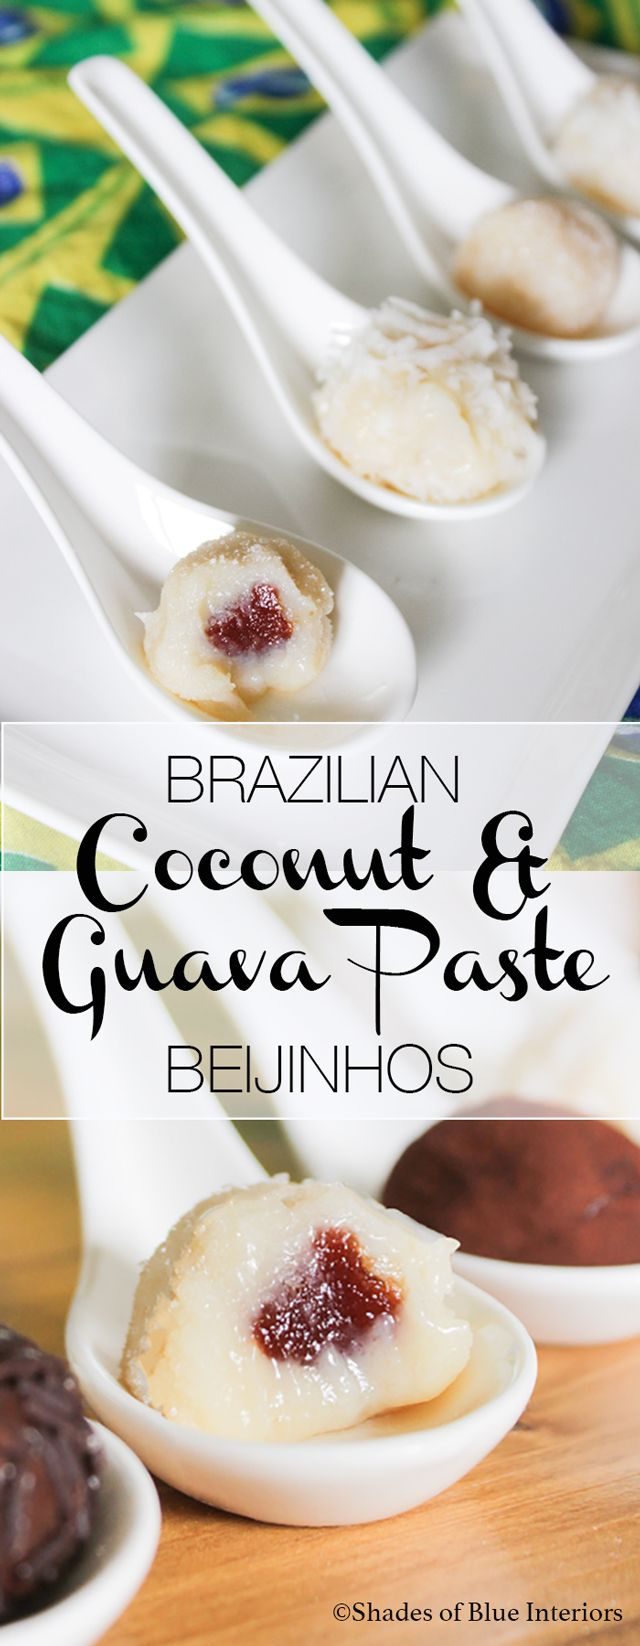 How to make Brazilian Brigadeiros, a traditional and popular chocolate truffle with 4 ingredients. Bonus recipe of Coconut & Guava Paste Beijinhos.